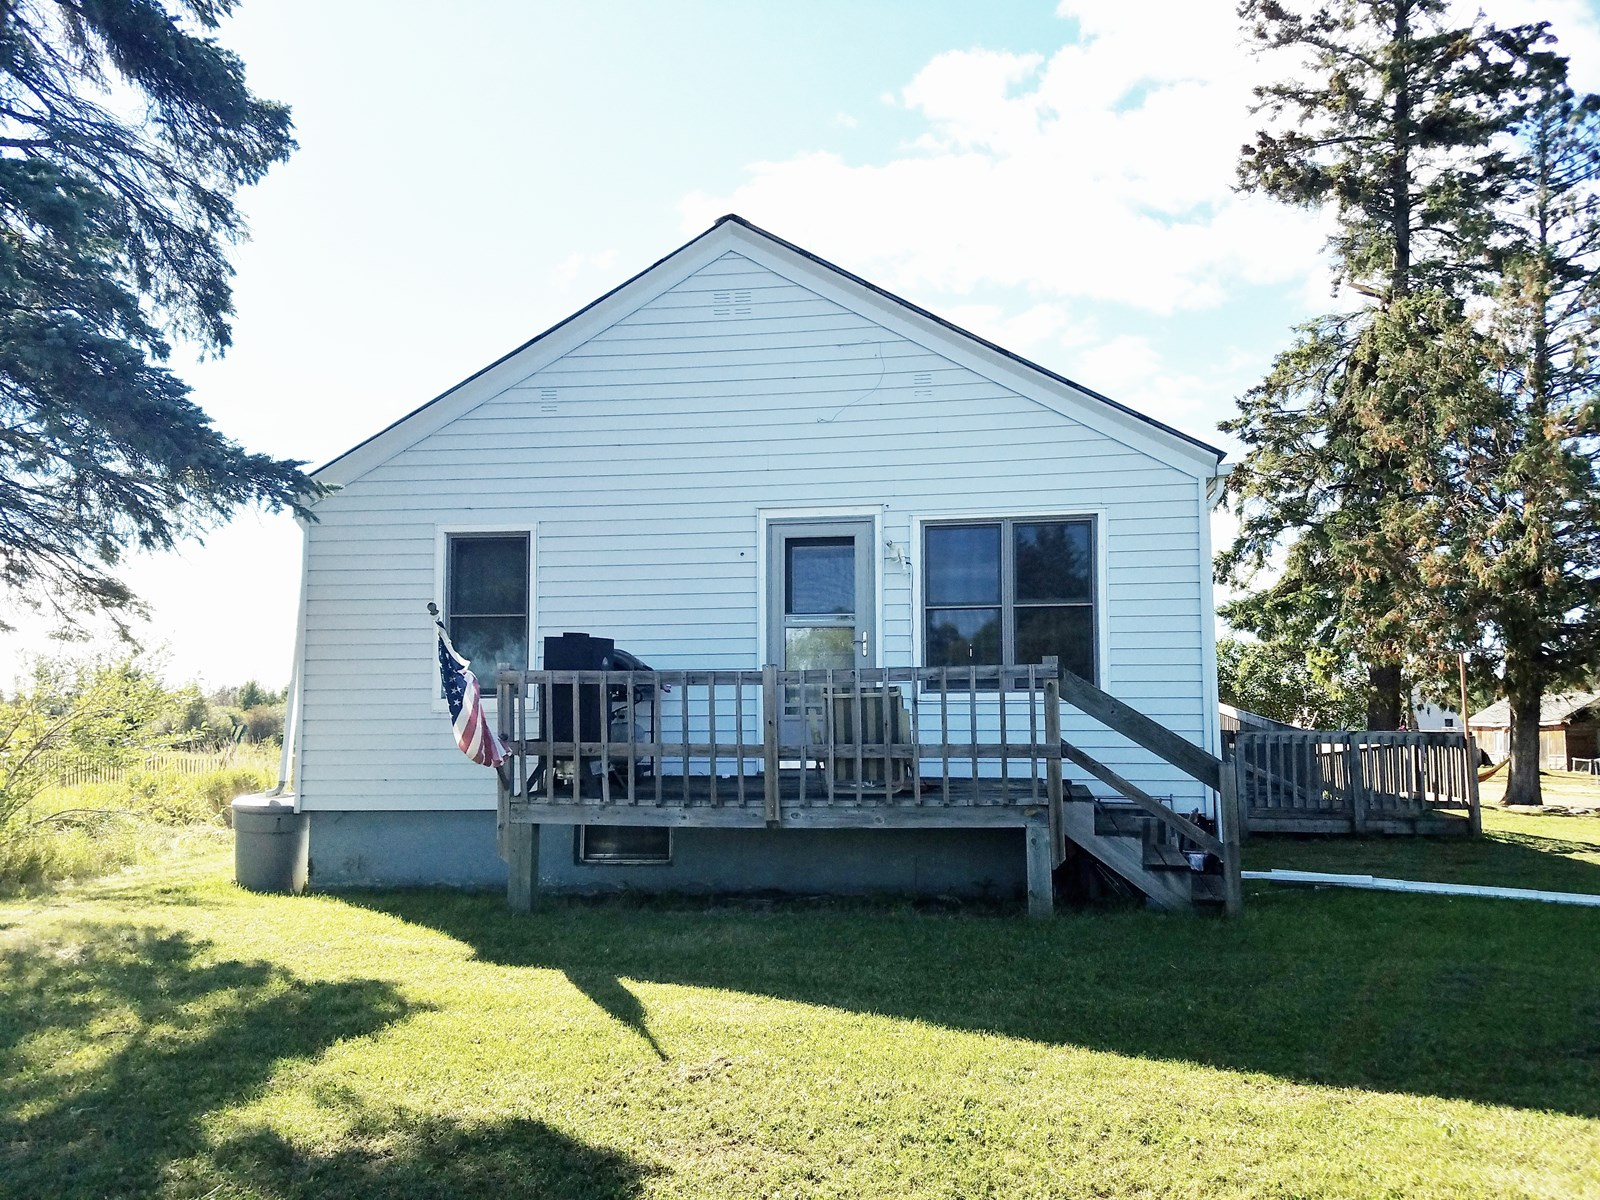 Country home for sale located in International Falls, MN